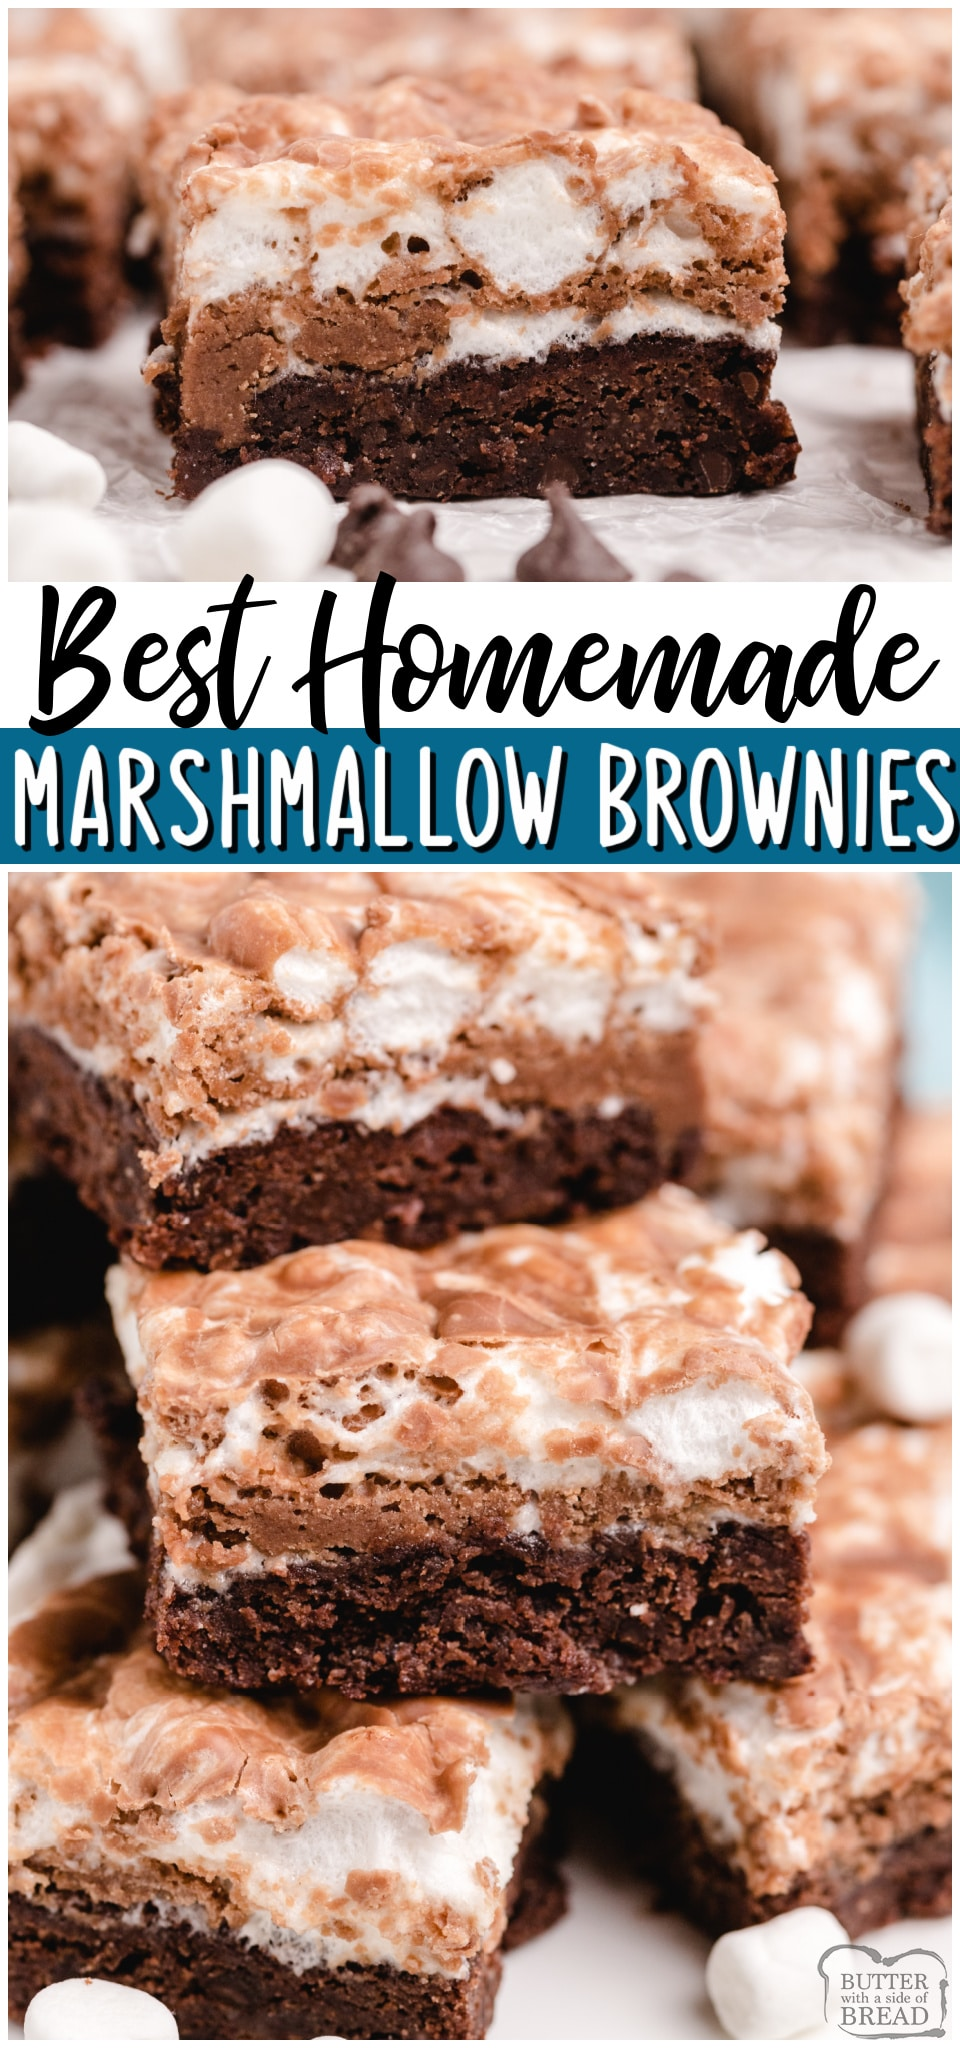 Homemade Marshmallow Brownies are fudgy, chocolaty brownies with a melted marshmallow topping! Perfect from scratch brownie recipe for anyone who loves chocolate & marshmallows!